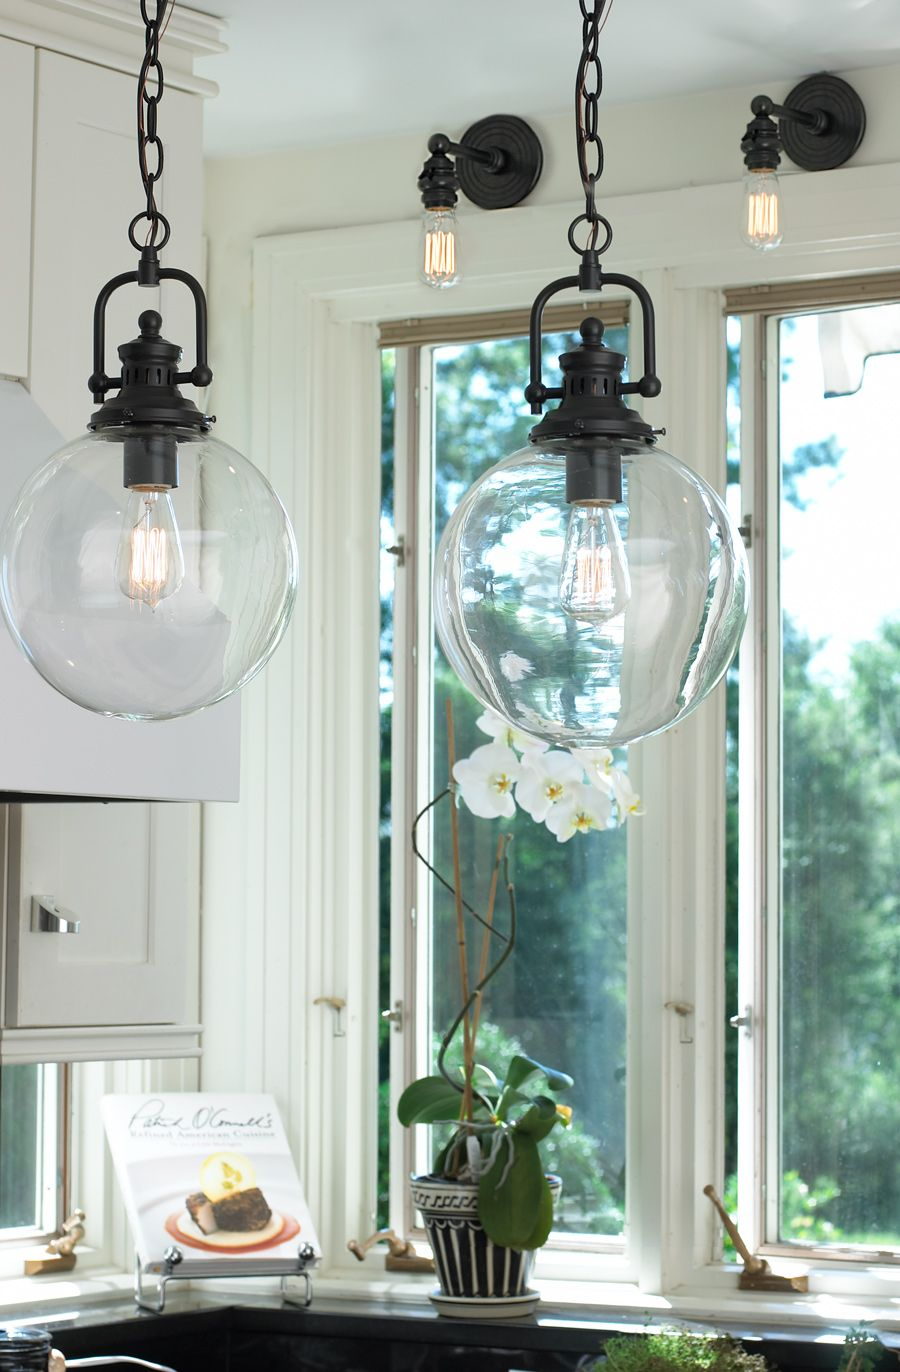 Large Glass Pendant Lights For Kitchen Island